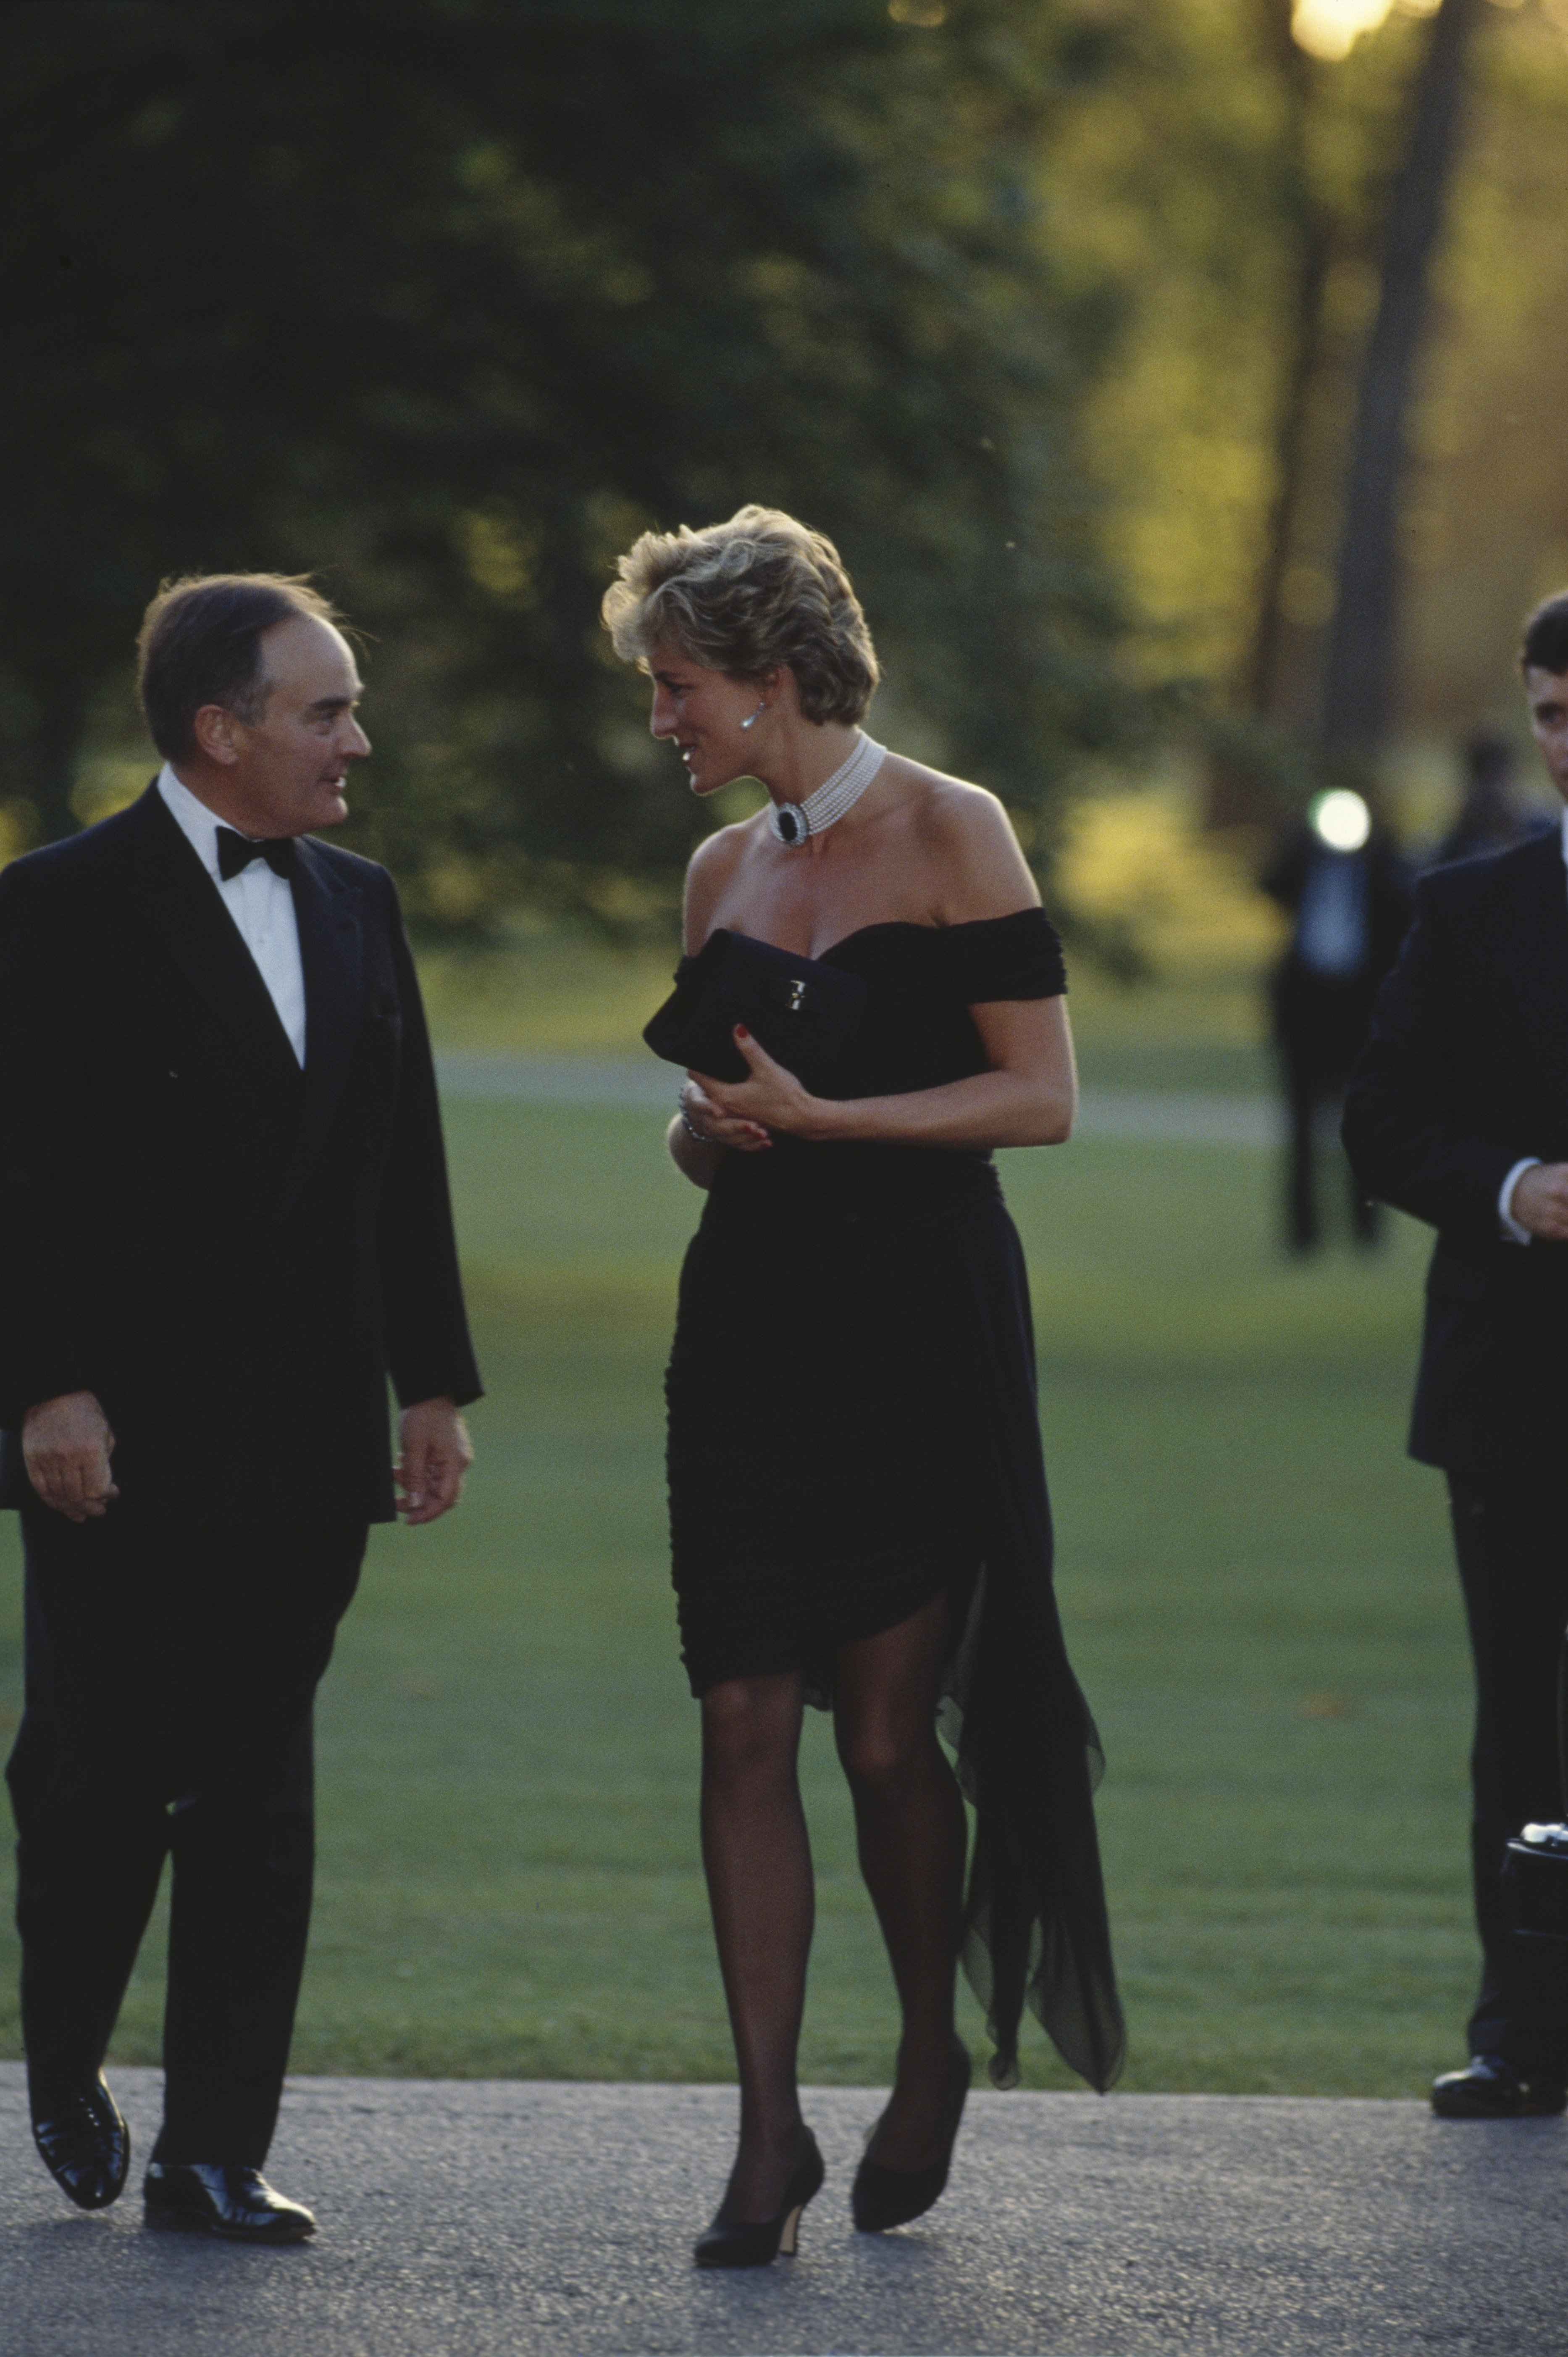 Image Credits: Getty Images | Princess Diana Pictured In Her Infamous Revenge Dress